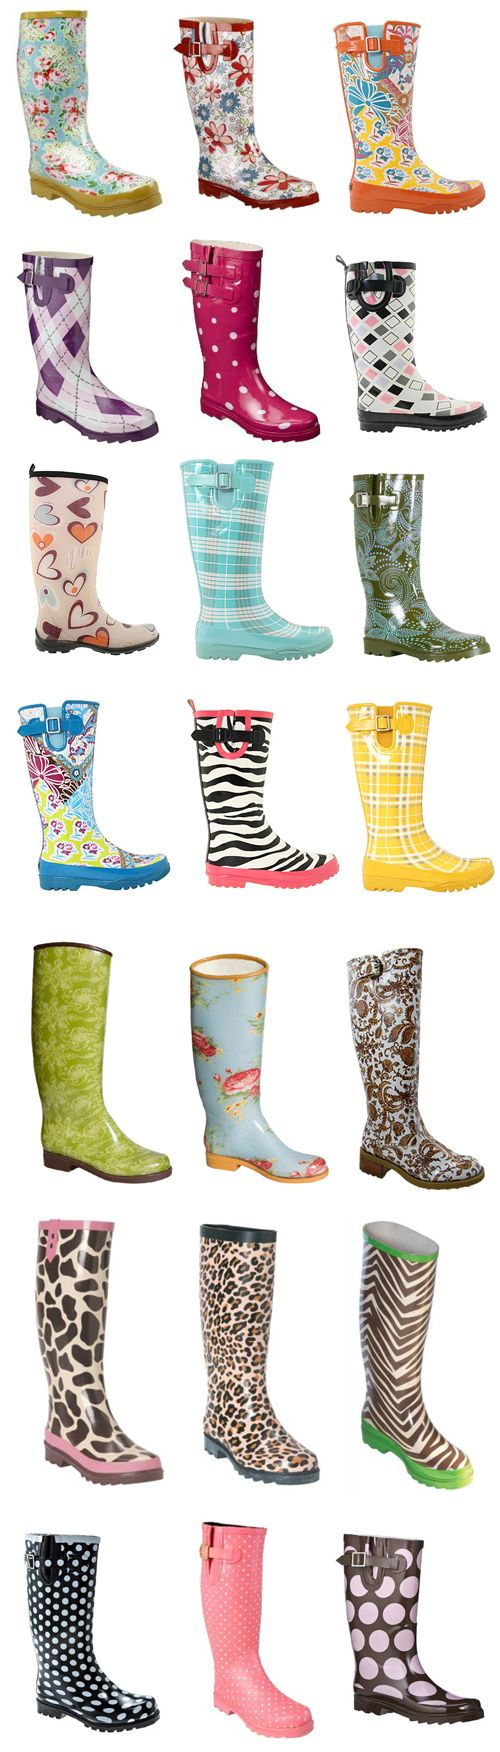 As much as I hate rain...I should get a pair of rain boots. Maybe that will mean no more wet pants legs!